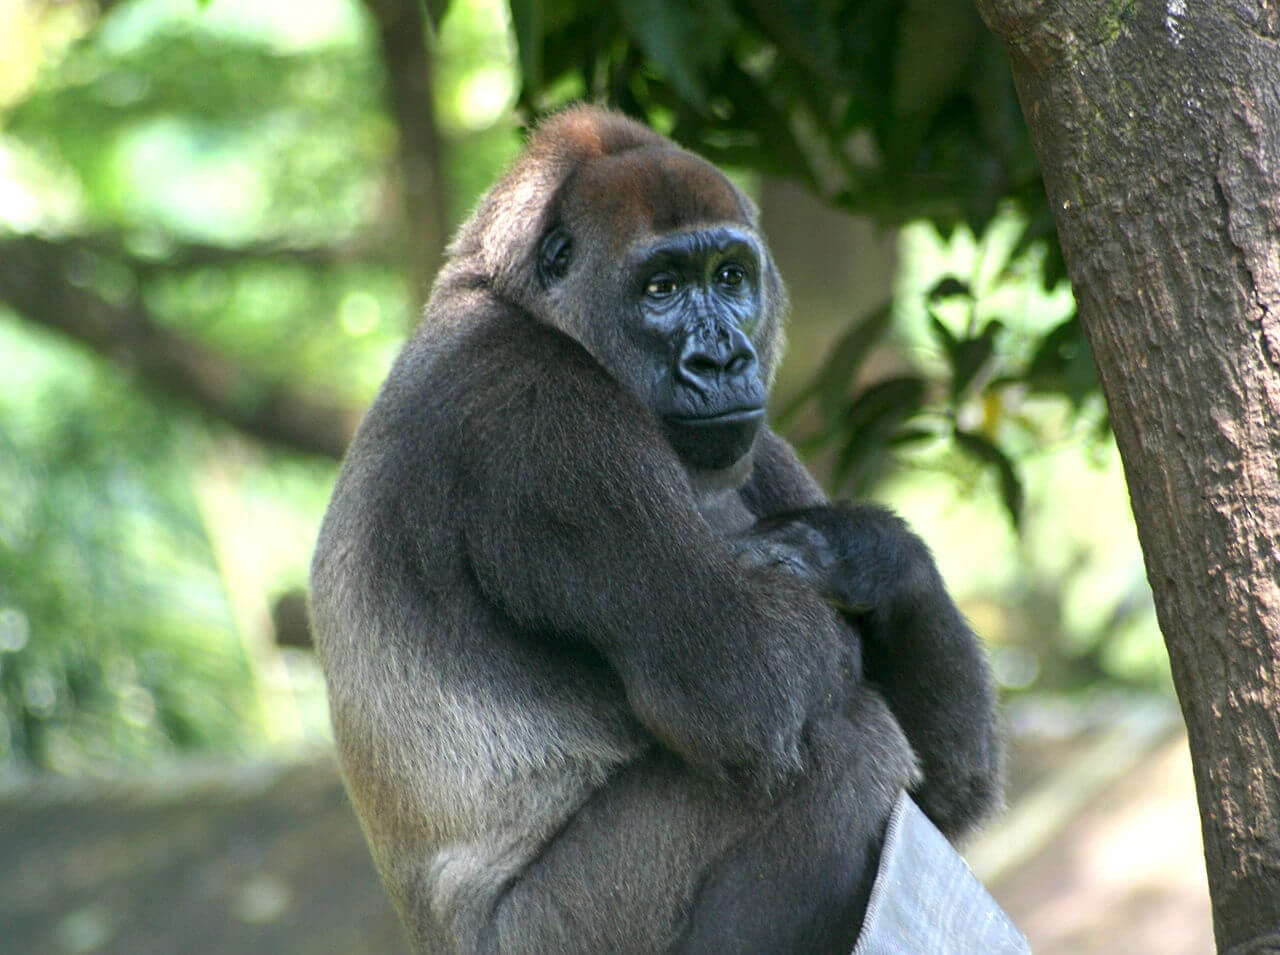 //en.wikipedia.org/wiki/Cross_River_gorilla#/media/File:Cross-River-Gorilla-Gorilla-gorilla-diehli).jpg